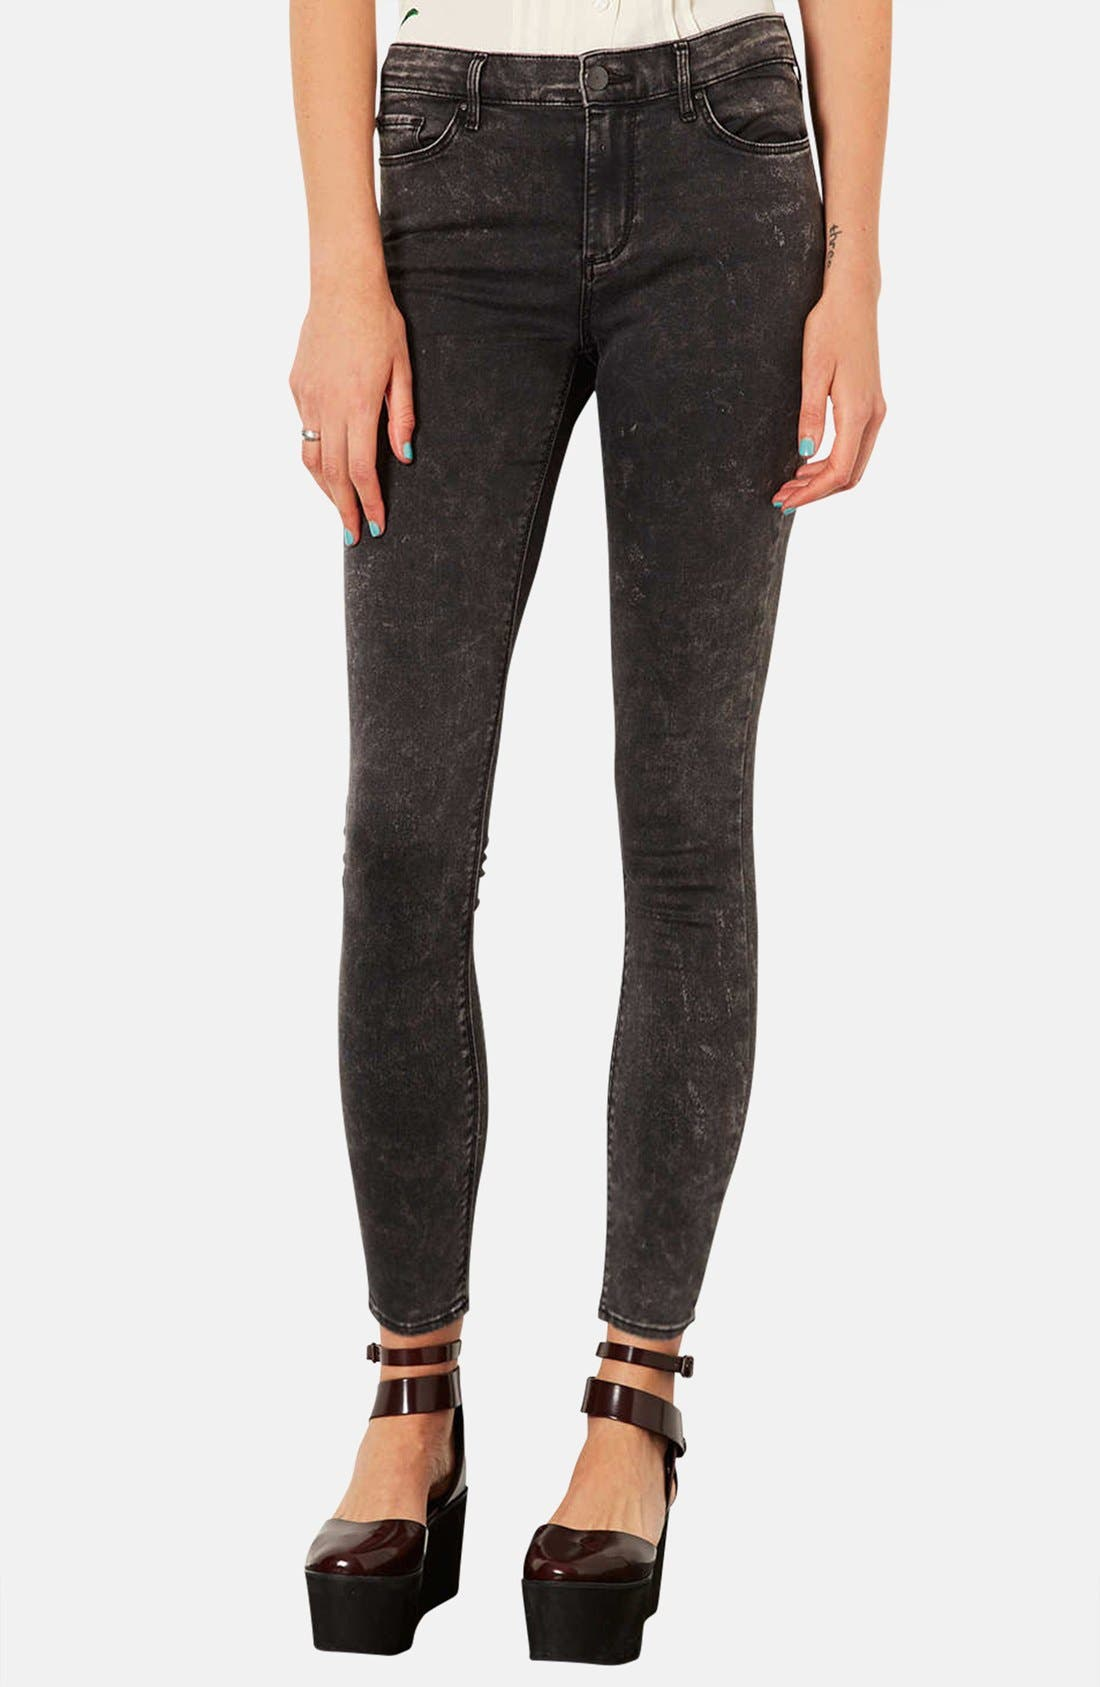 Main Image - Topshop Moto 'Leigh' Mottled Skinny Jeans (Regular & Short)